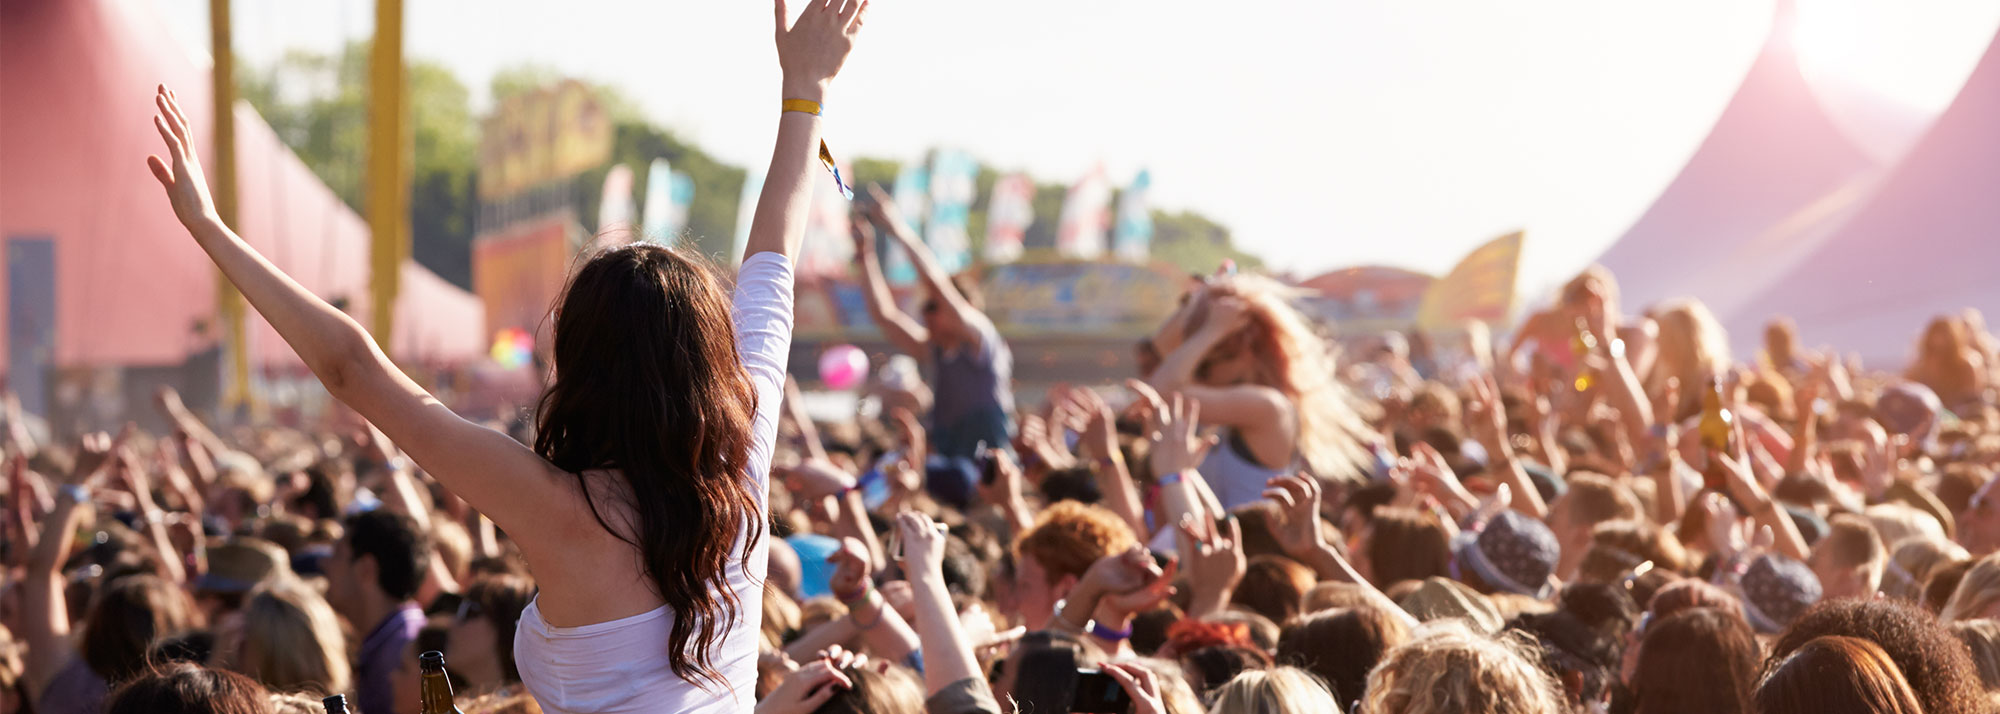 Five festivals to attend this year